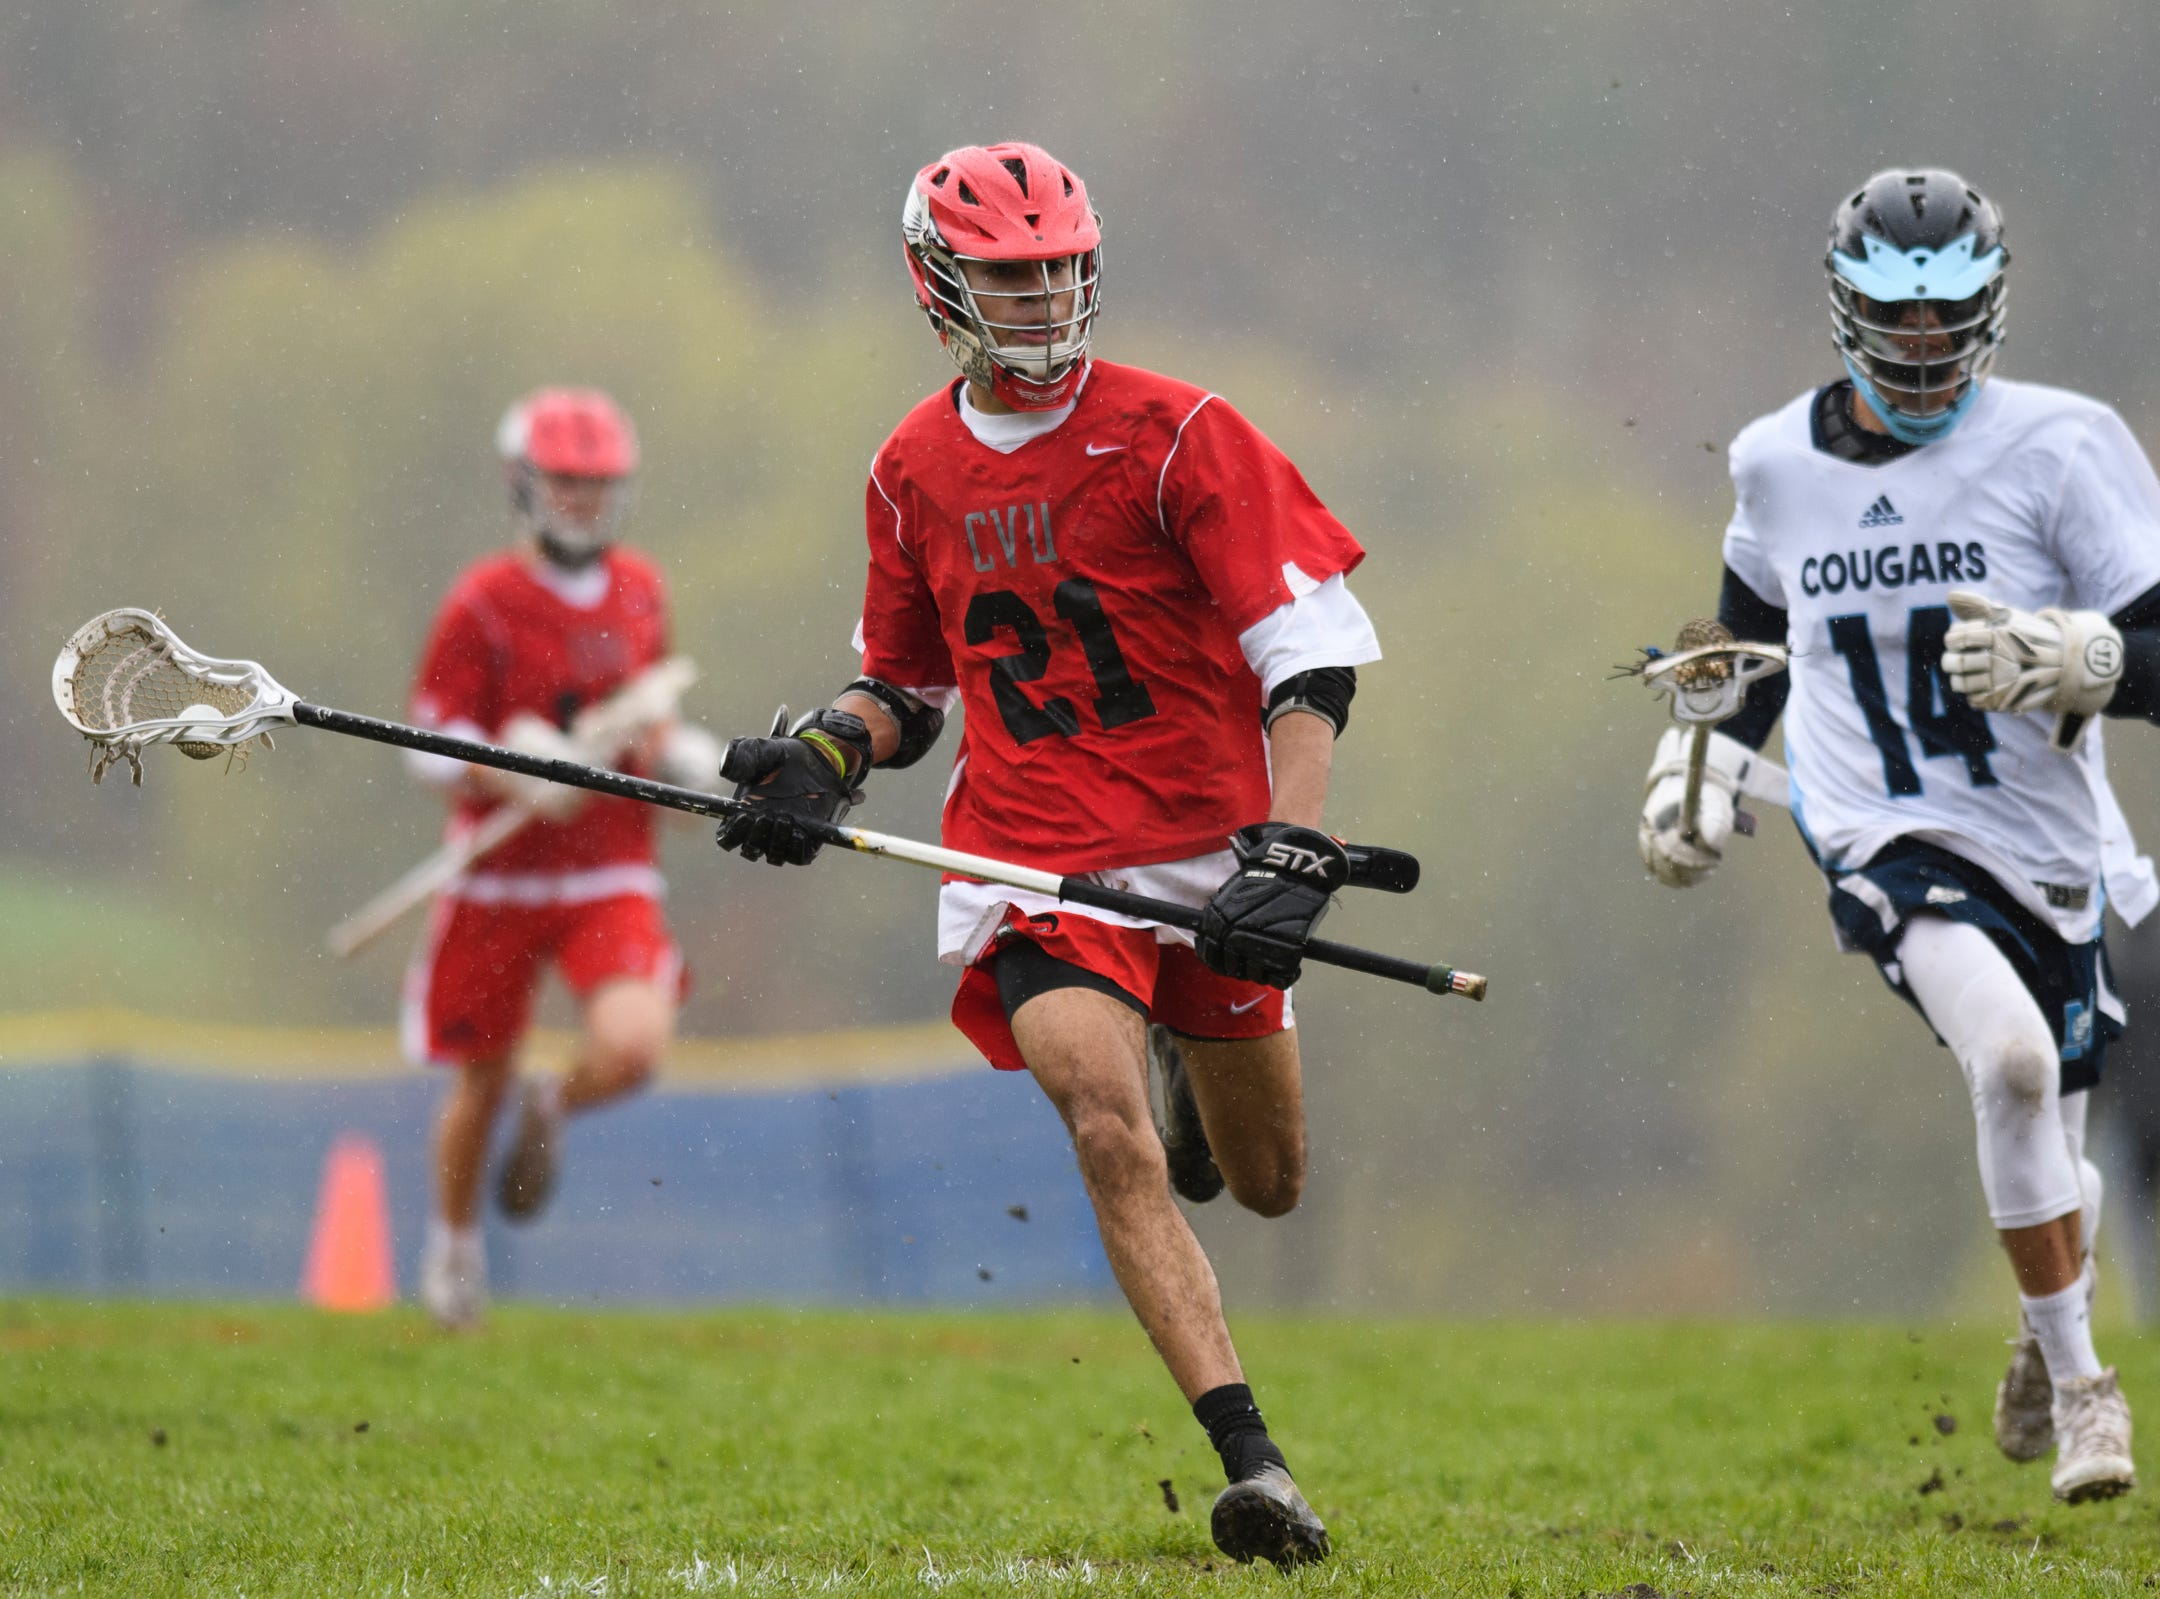 CVU's Noah Martin (21) runs down the field with the ball during the boys lacrosse game between the Champlain Valley Union Redhawks and the Mount Mansfield Cougars at MMU High School on Tuesday afternoon May 14, 2019 in Jericho, Vermont.